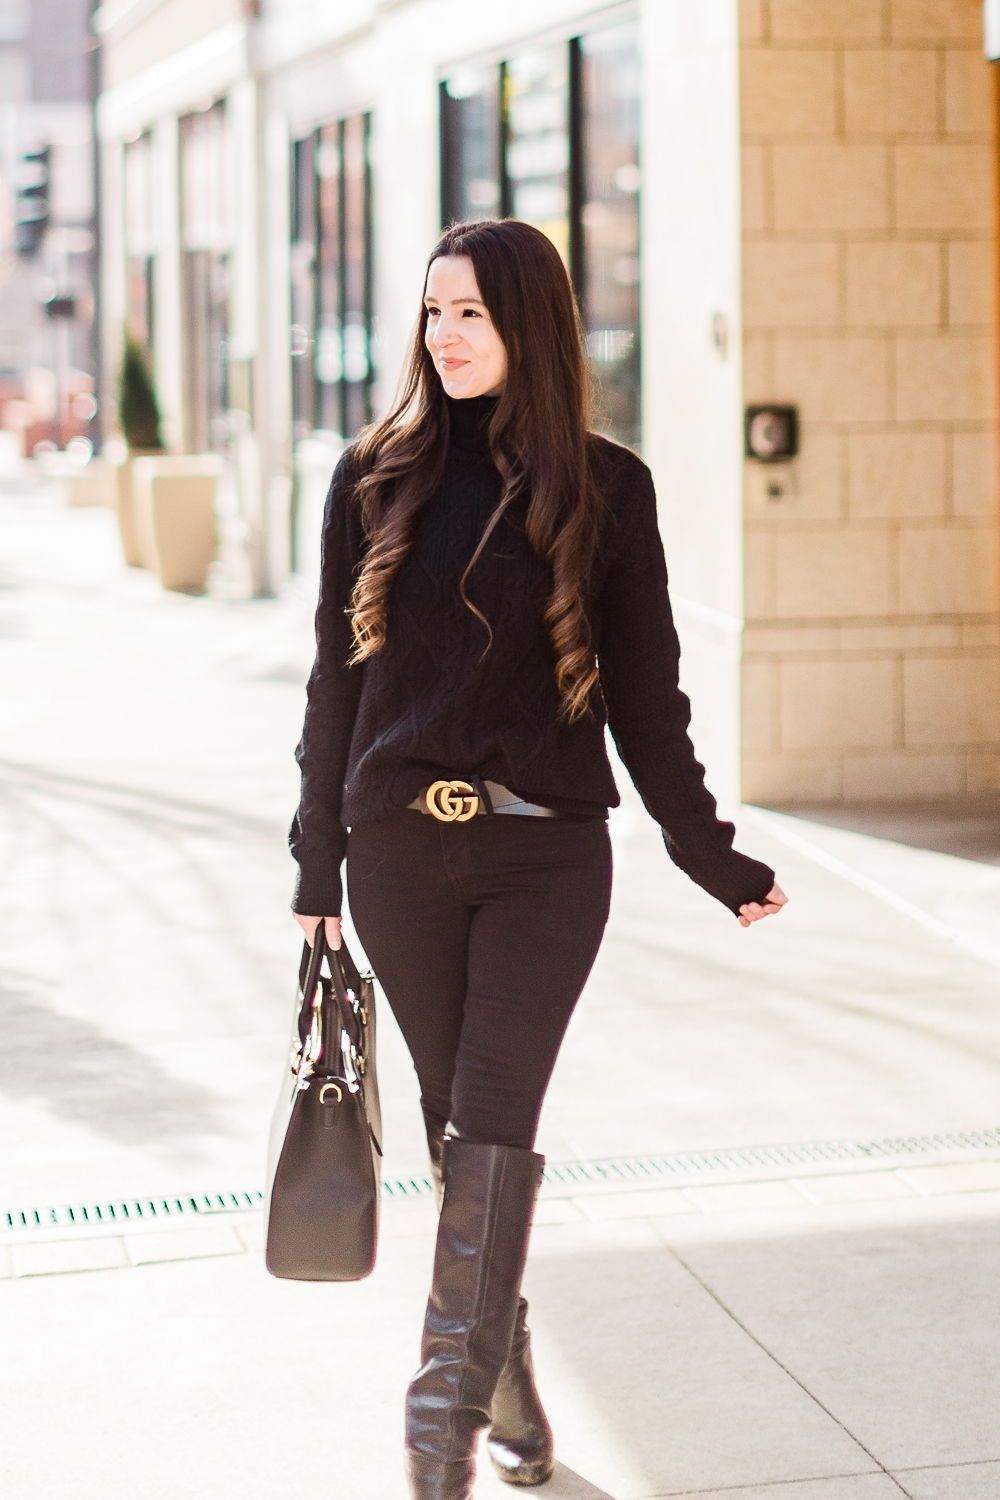 365621b00 One of my favorite casual all black winter outfits! It's chic, classy and  can be worn both day and night | chunky black turtleneck sweater styled  with black ...